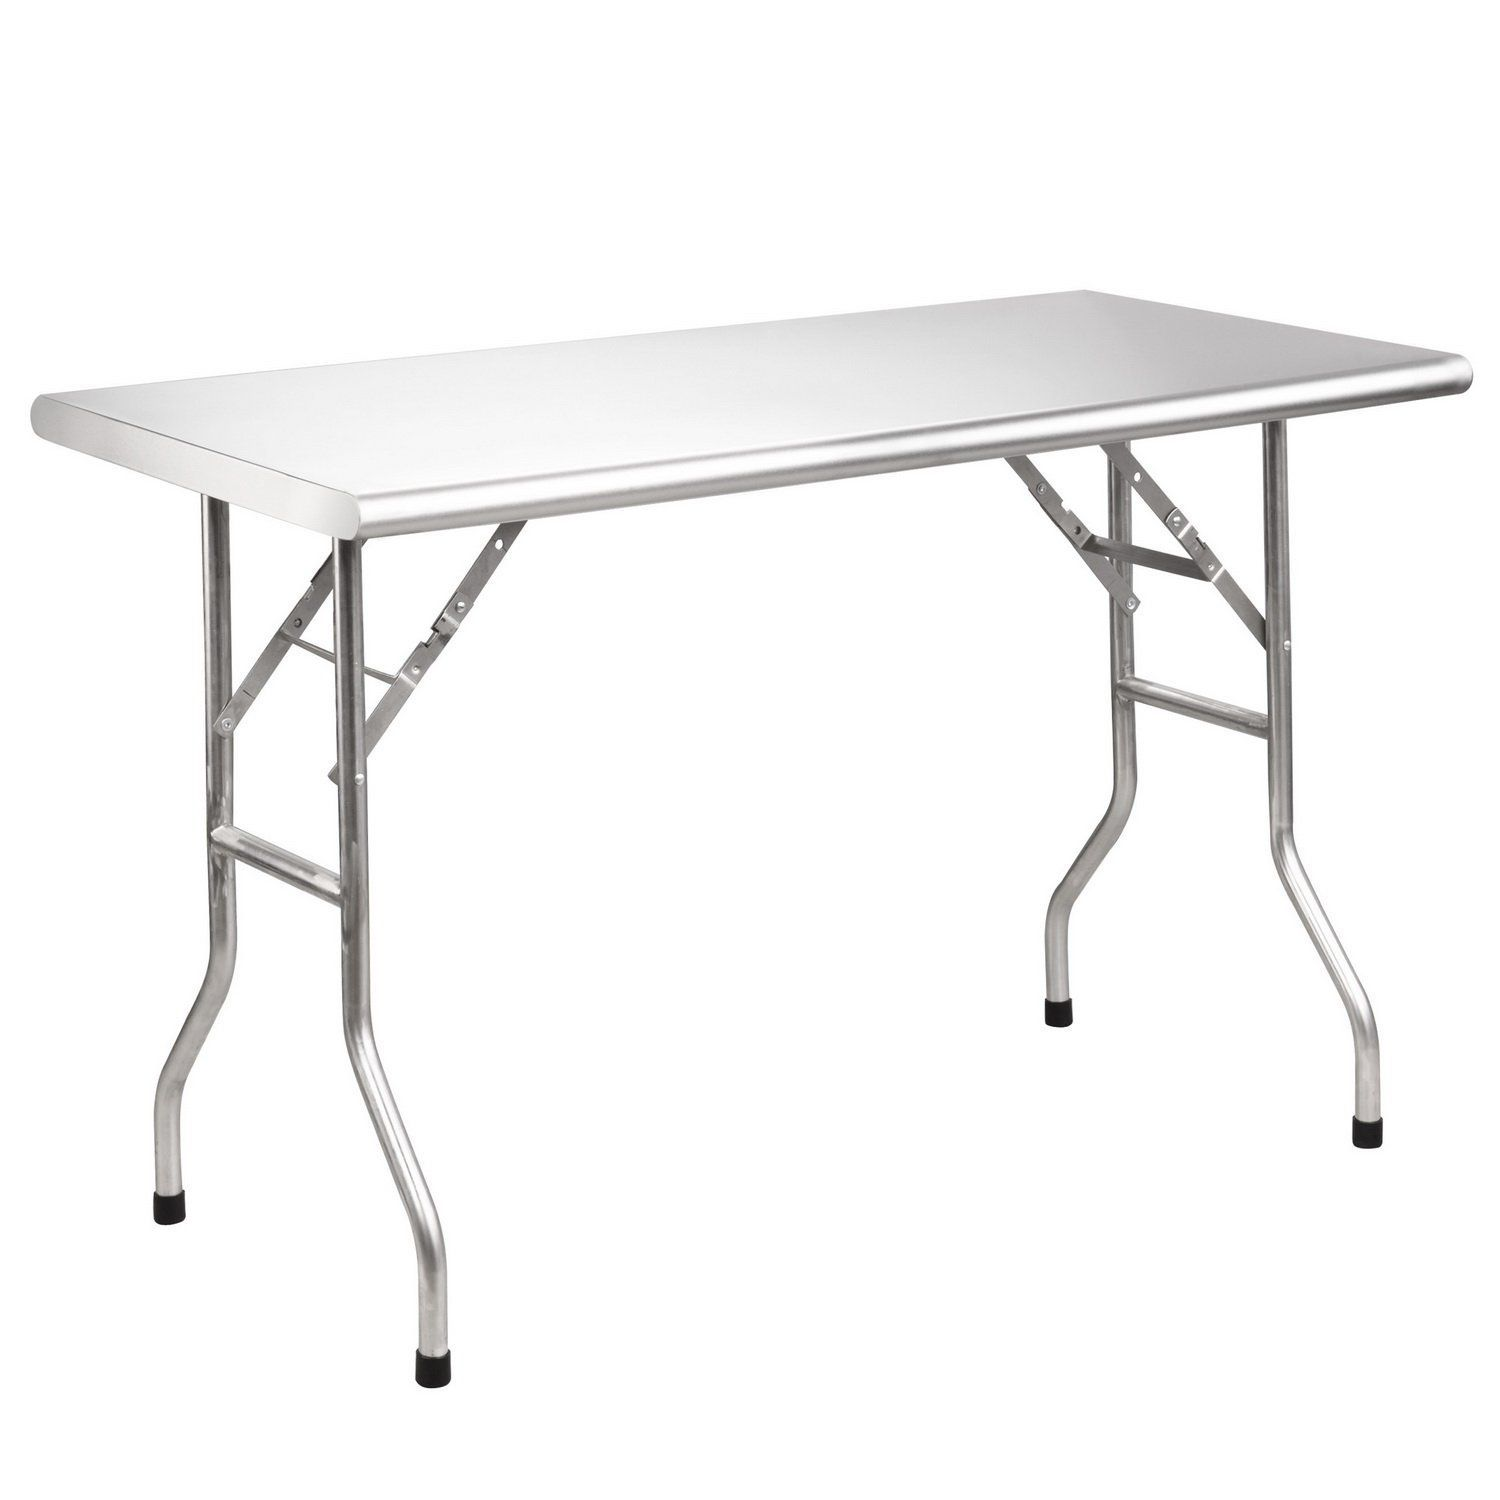 Royal Gourmet Stainless Steel Folding Work Table